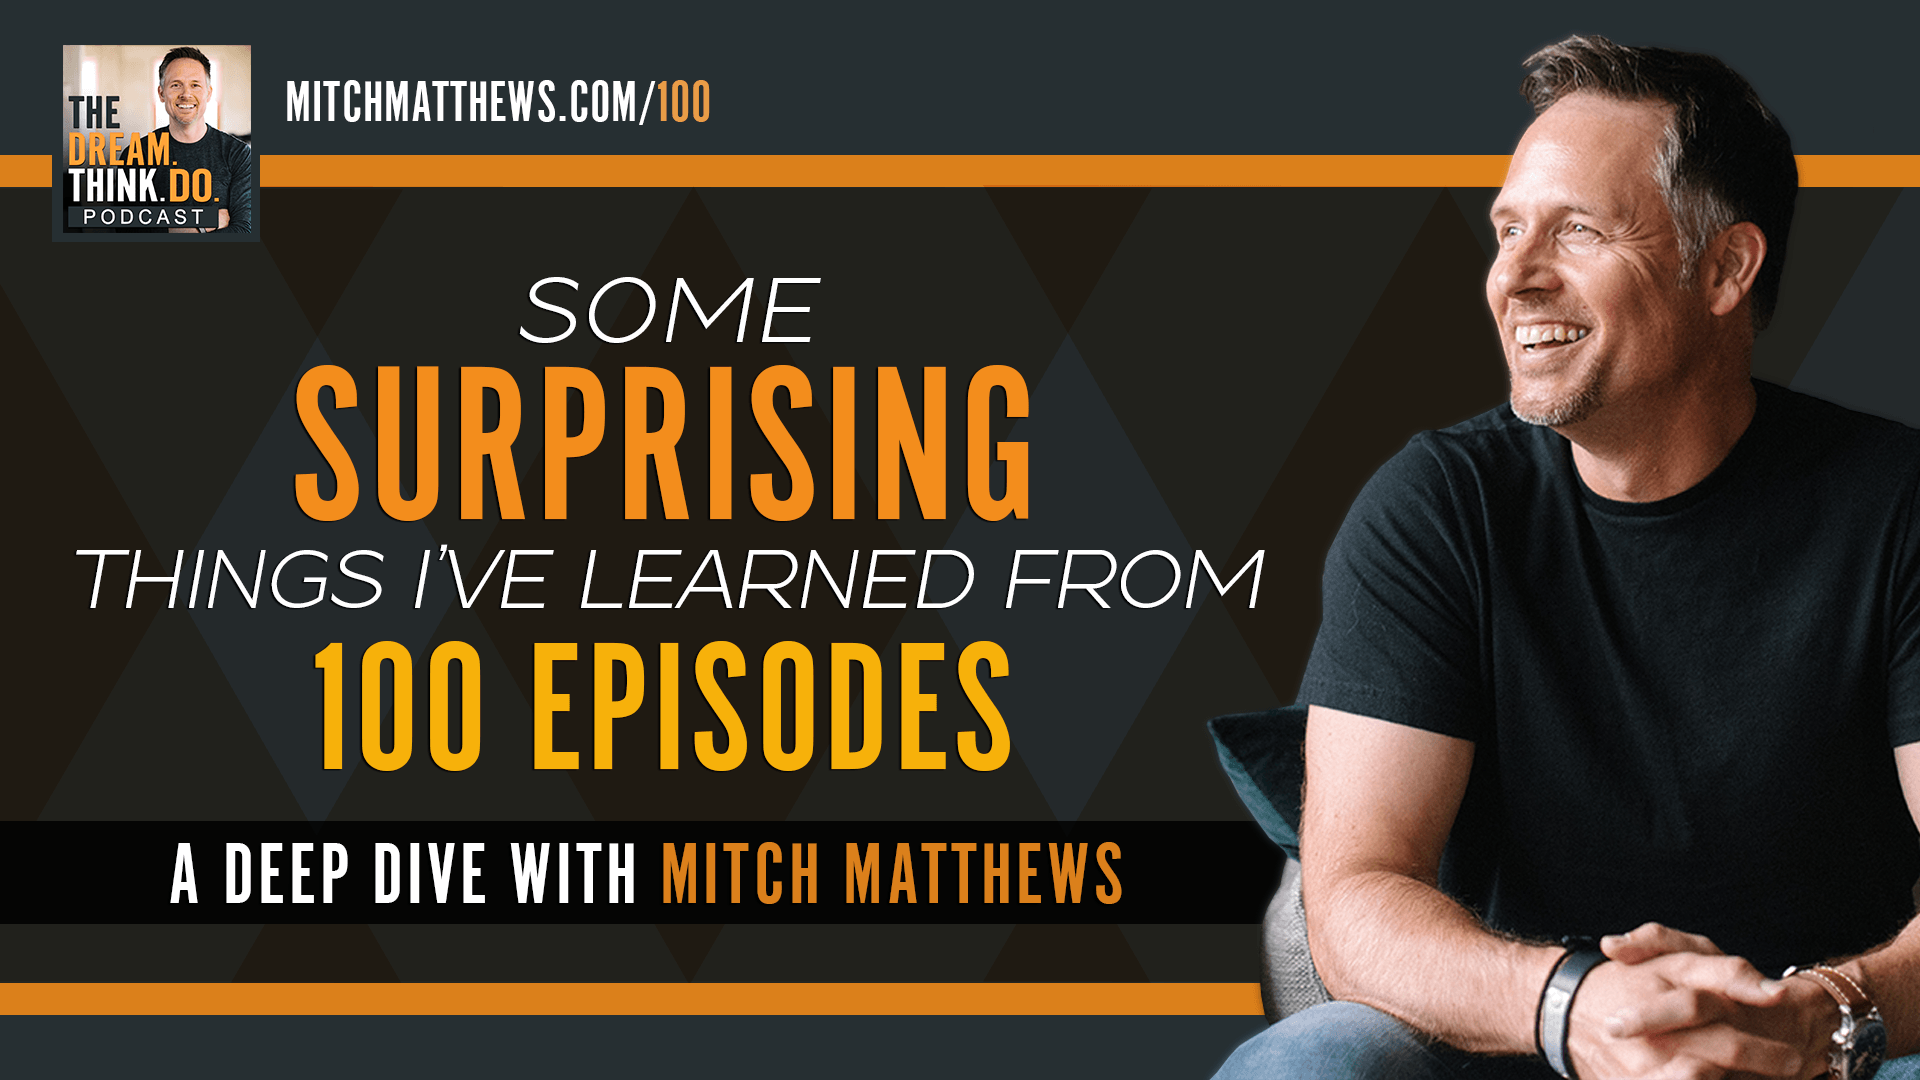 Some Surprising Things I've Learned From 100 Episodes I A Deep Dive with Mitch Matthews